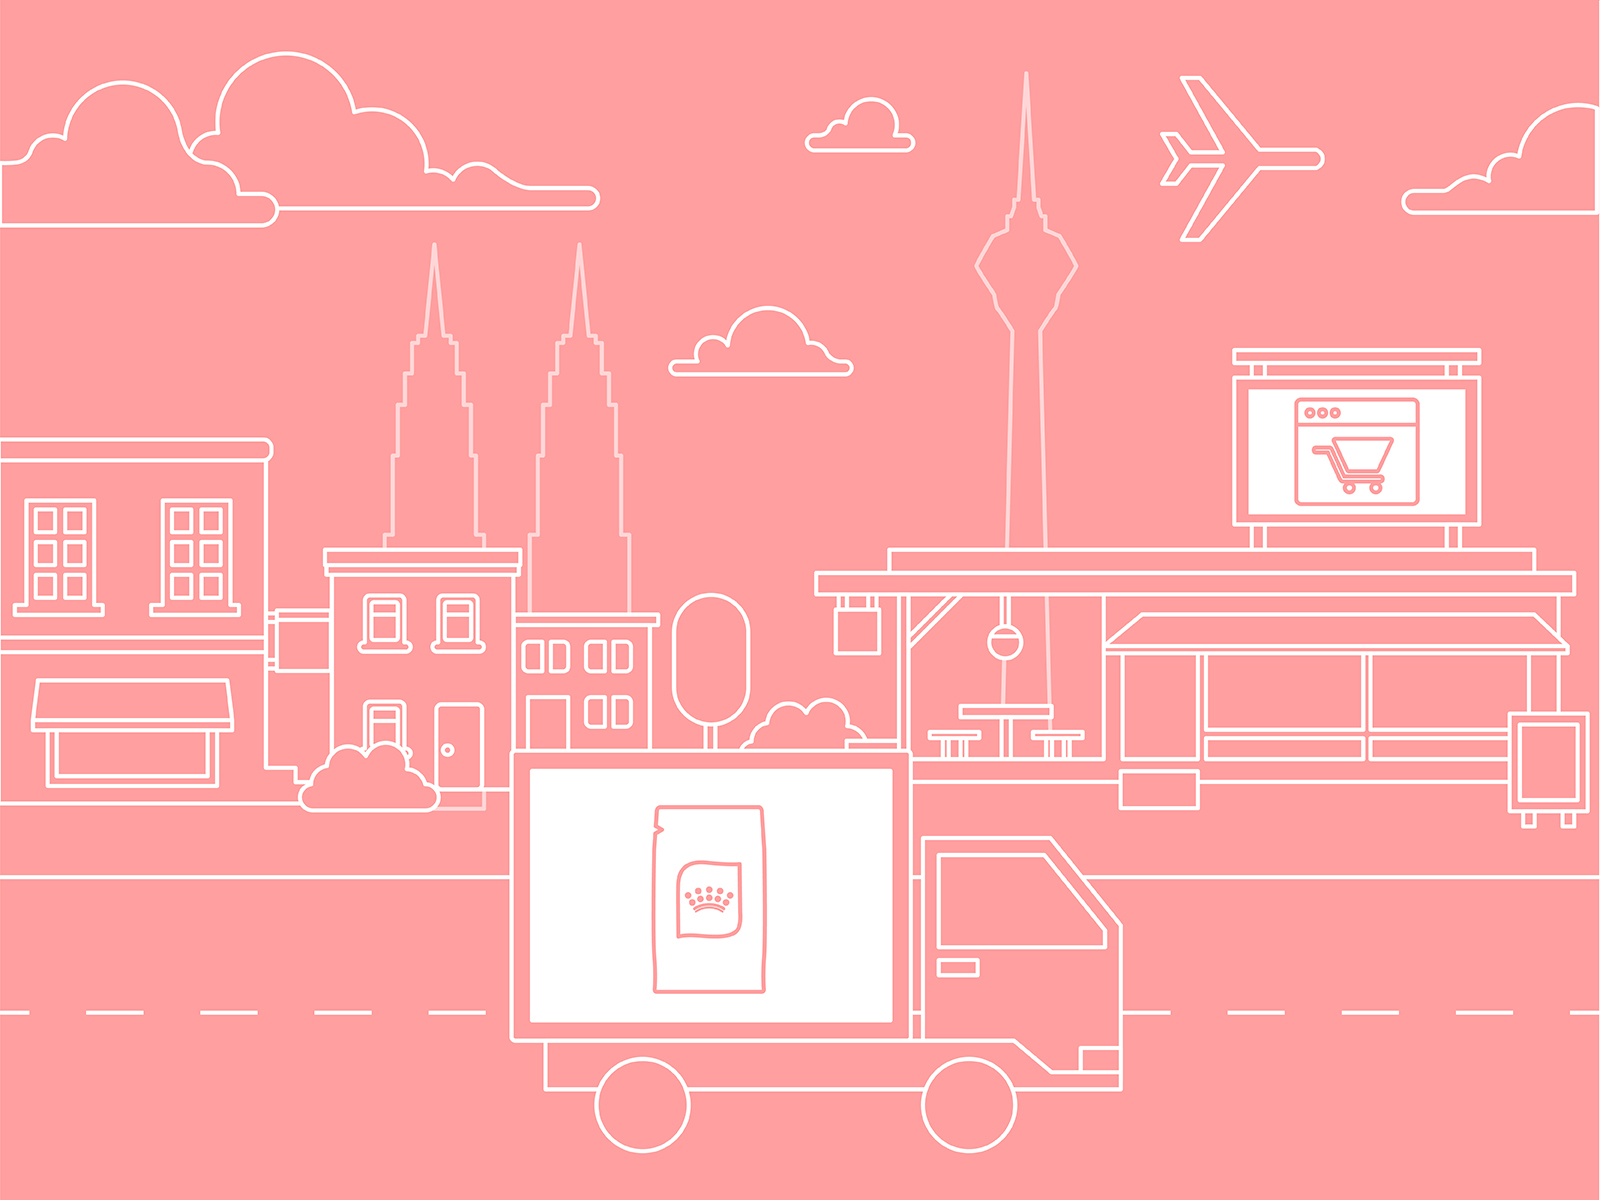 Illustration of digital device and delivery truck to showcase Royal Canin CI developed to guide e-retailers on selling online